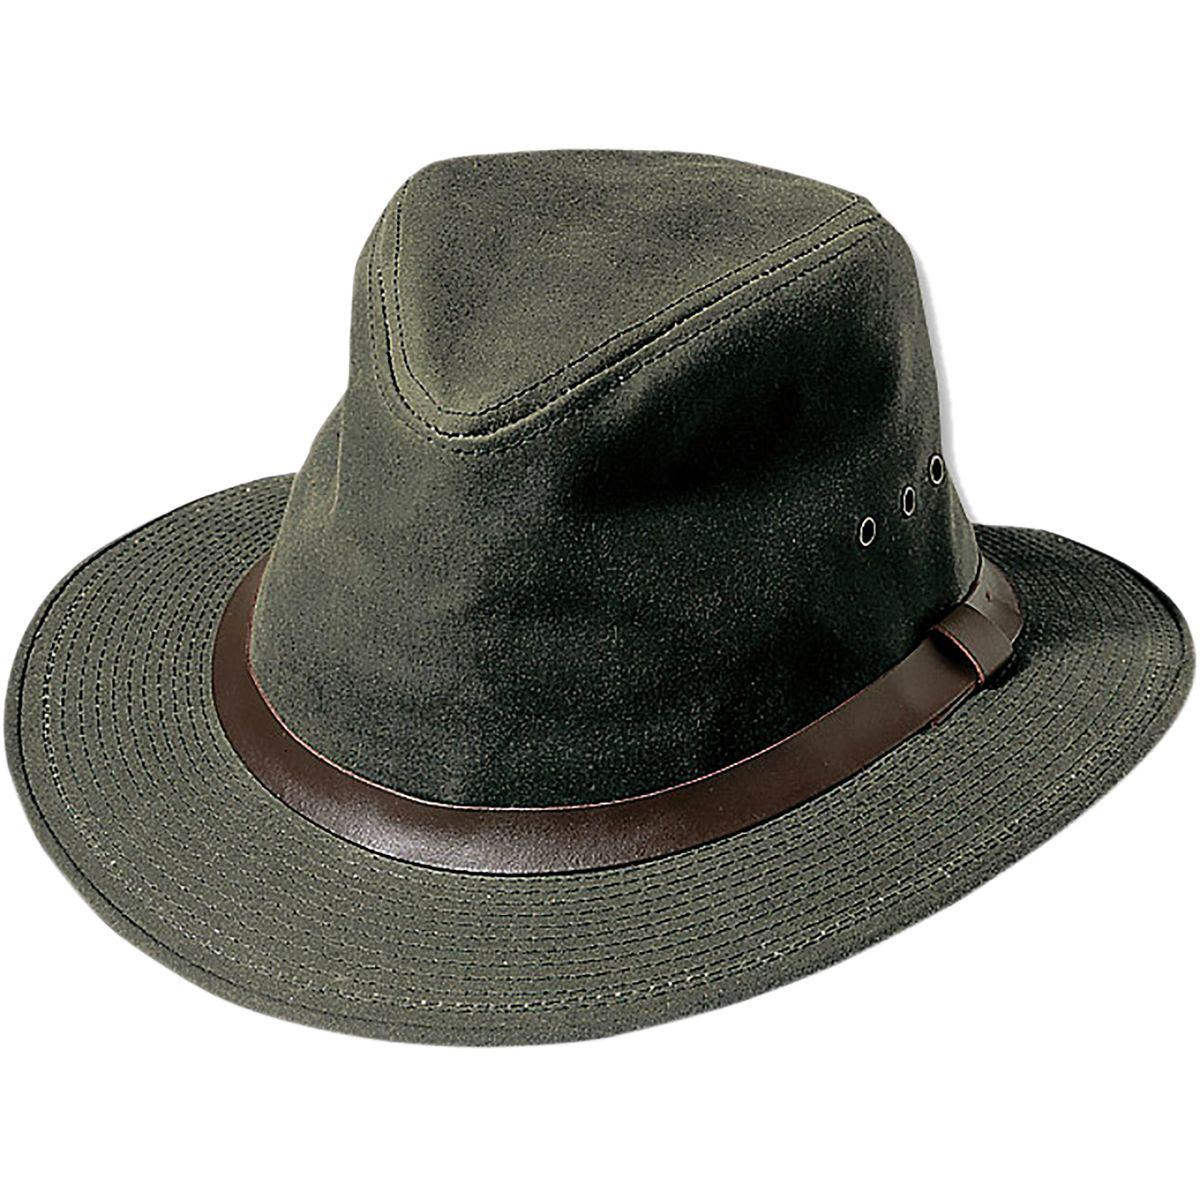 029d0fa3a Filson Shelter Cloth Packer Hat in Green for Men - Lyst